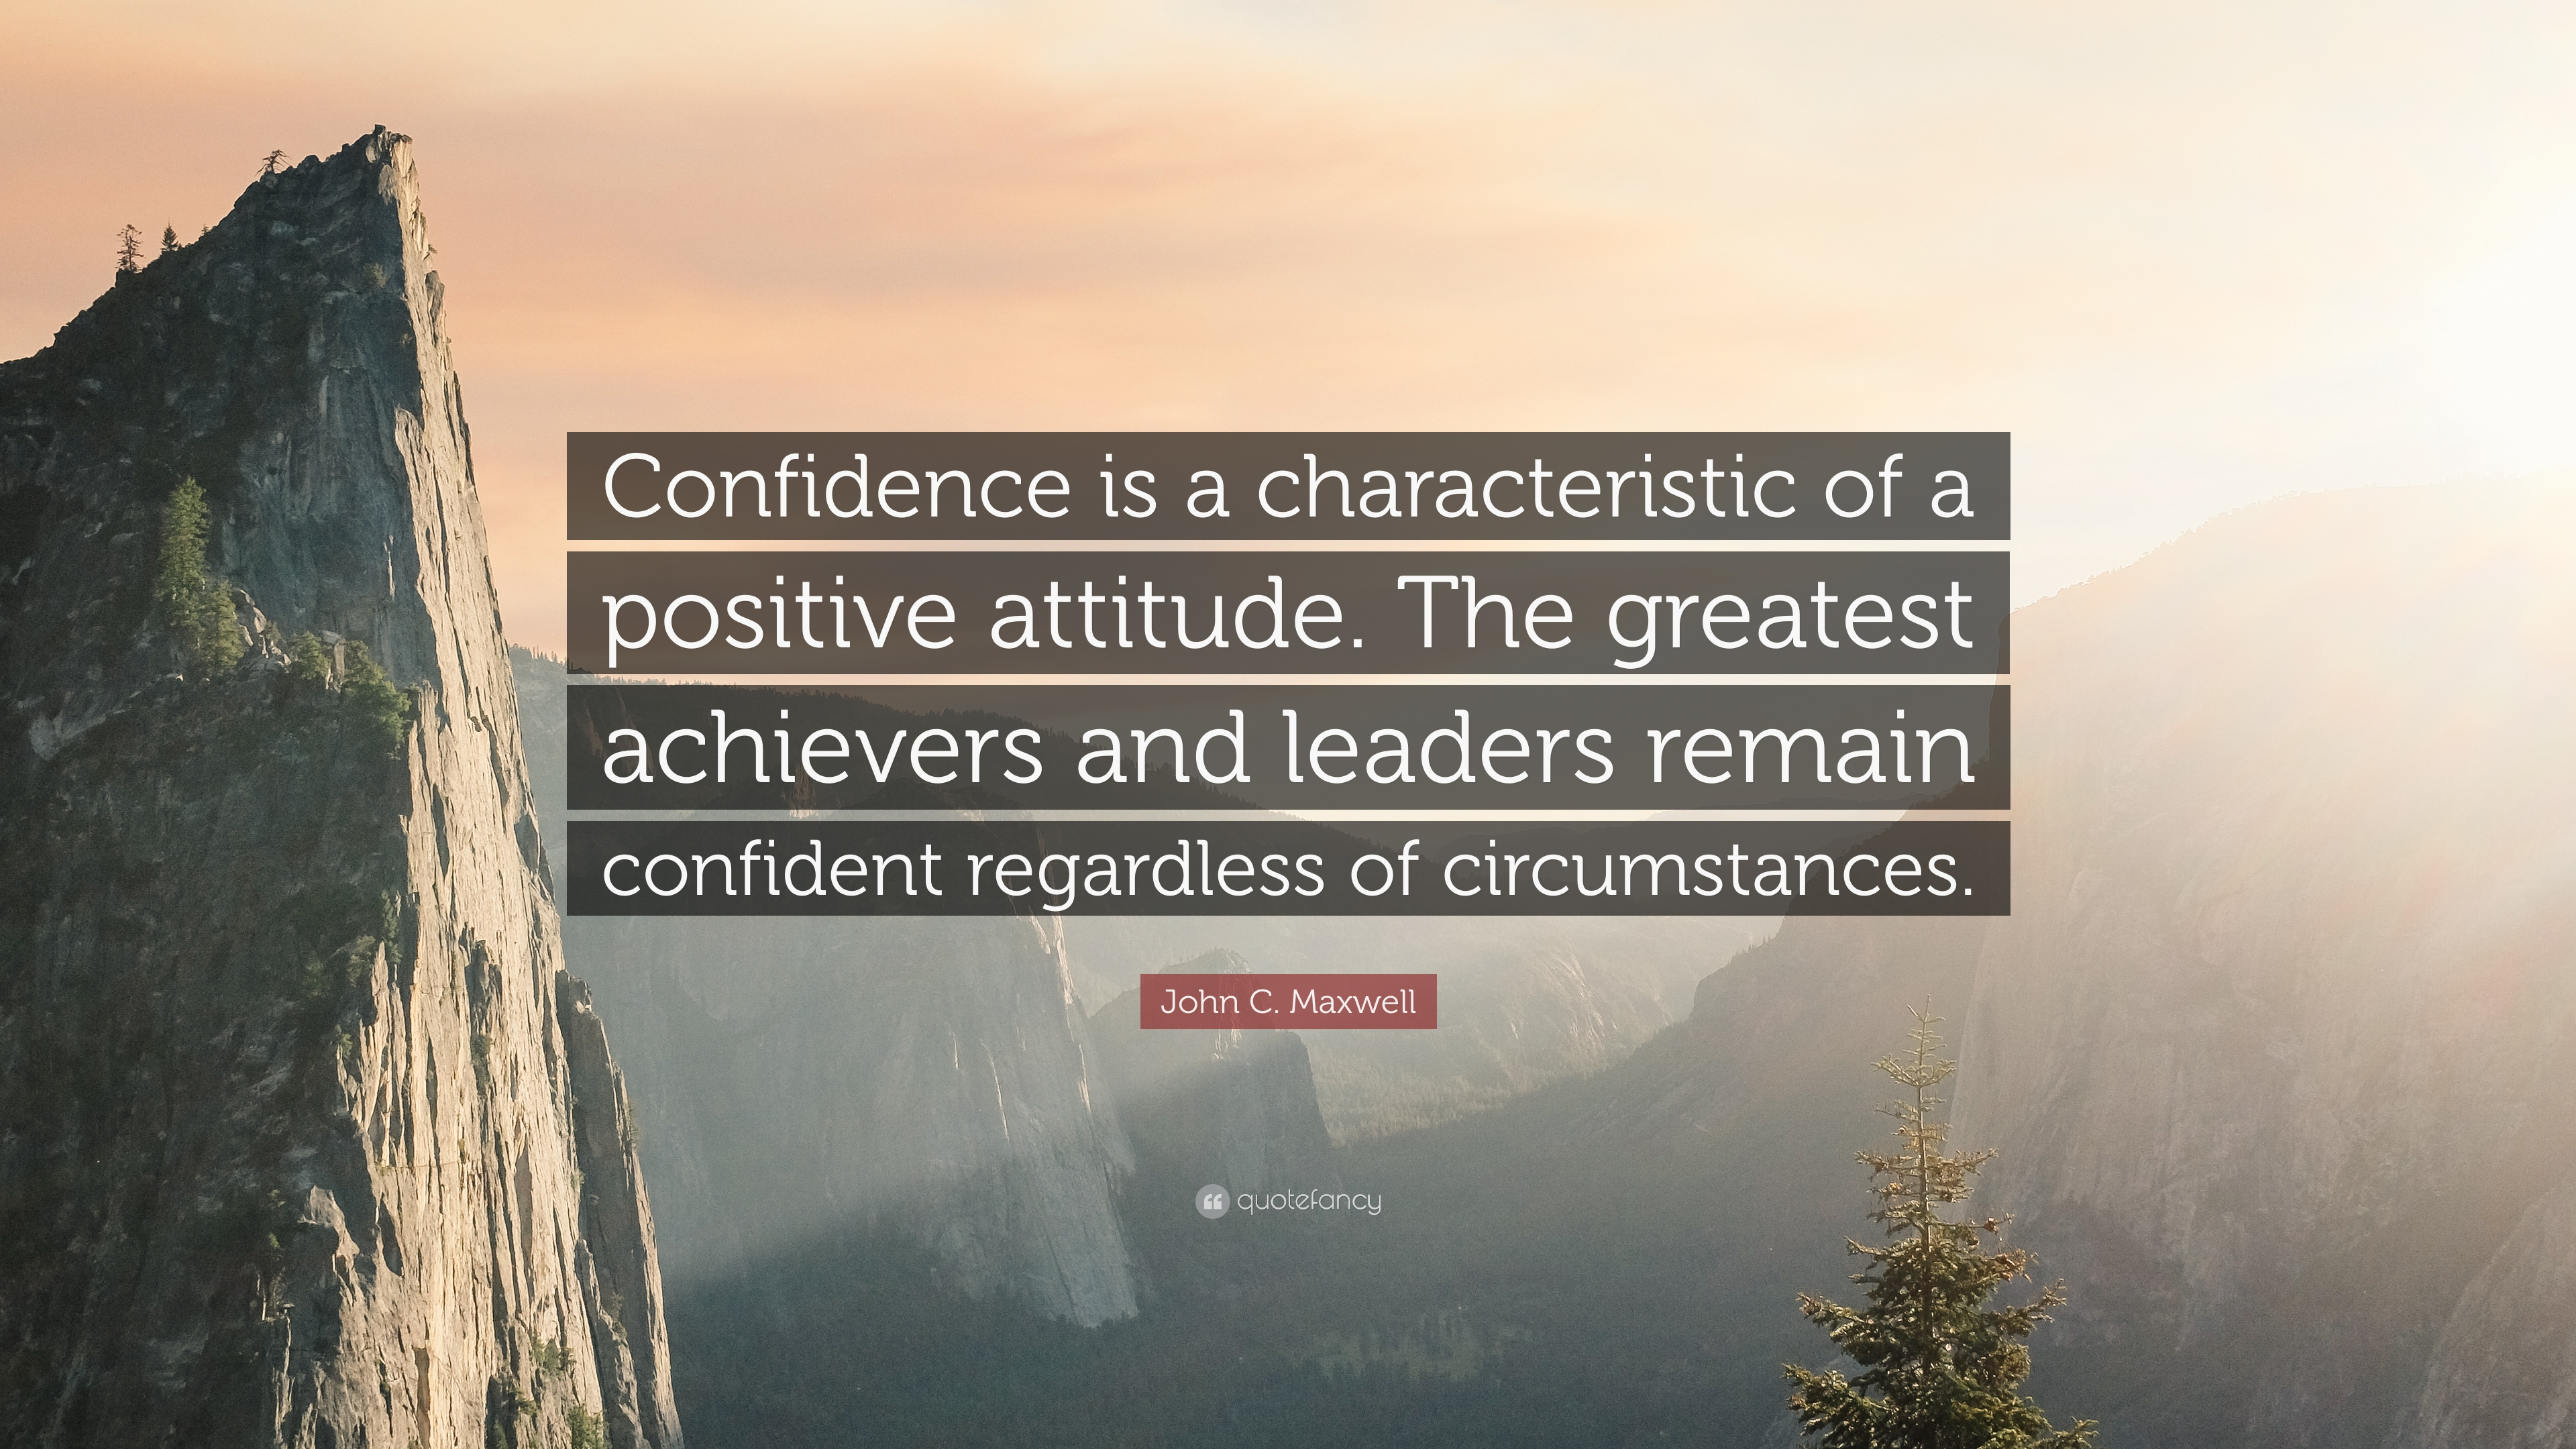 John C Maxwell Quote Confidence Is A Characteristic Of Positive Attitude